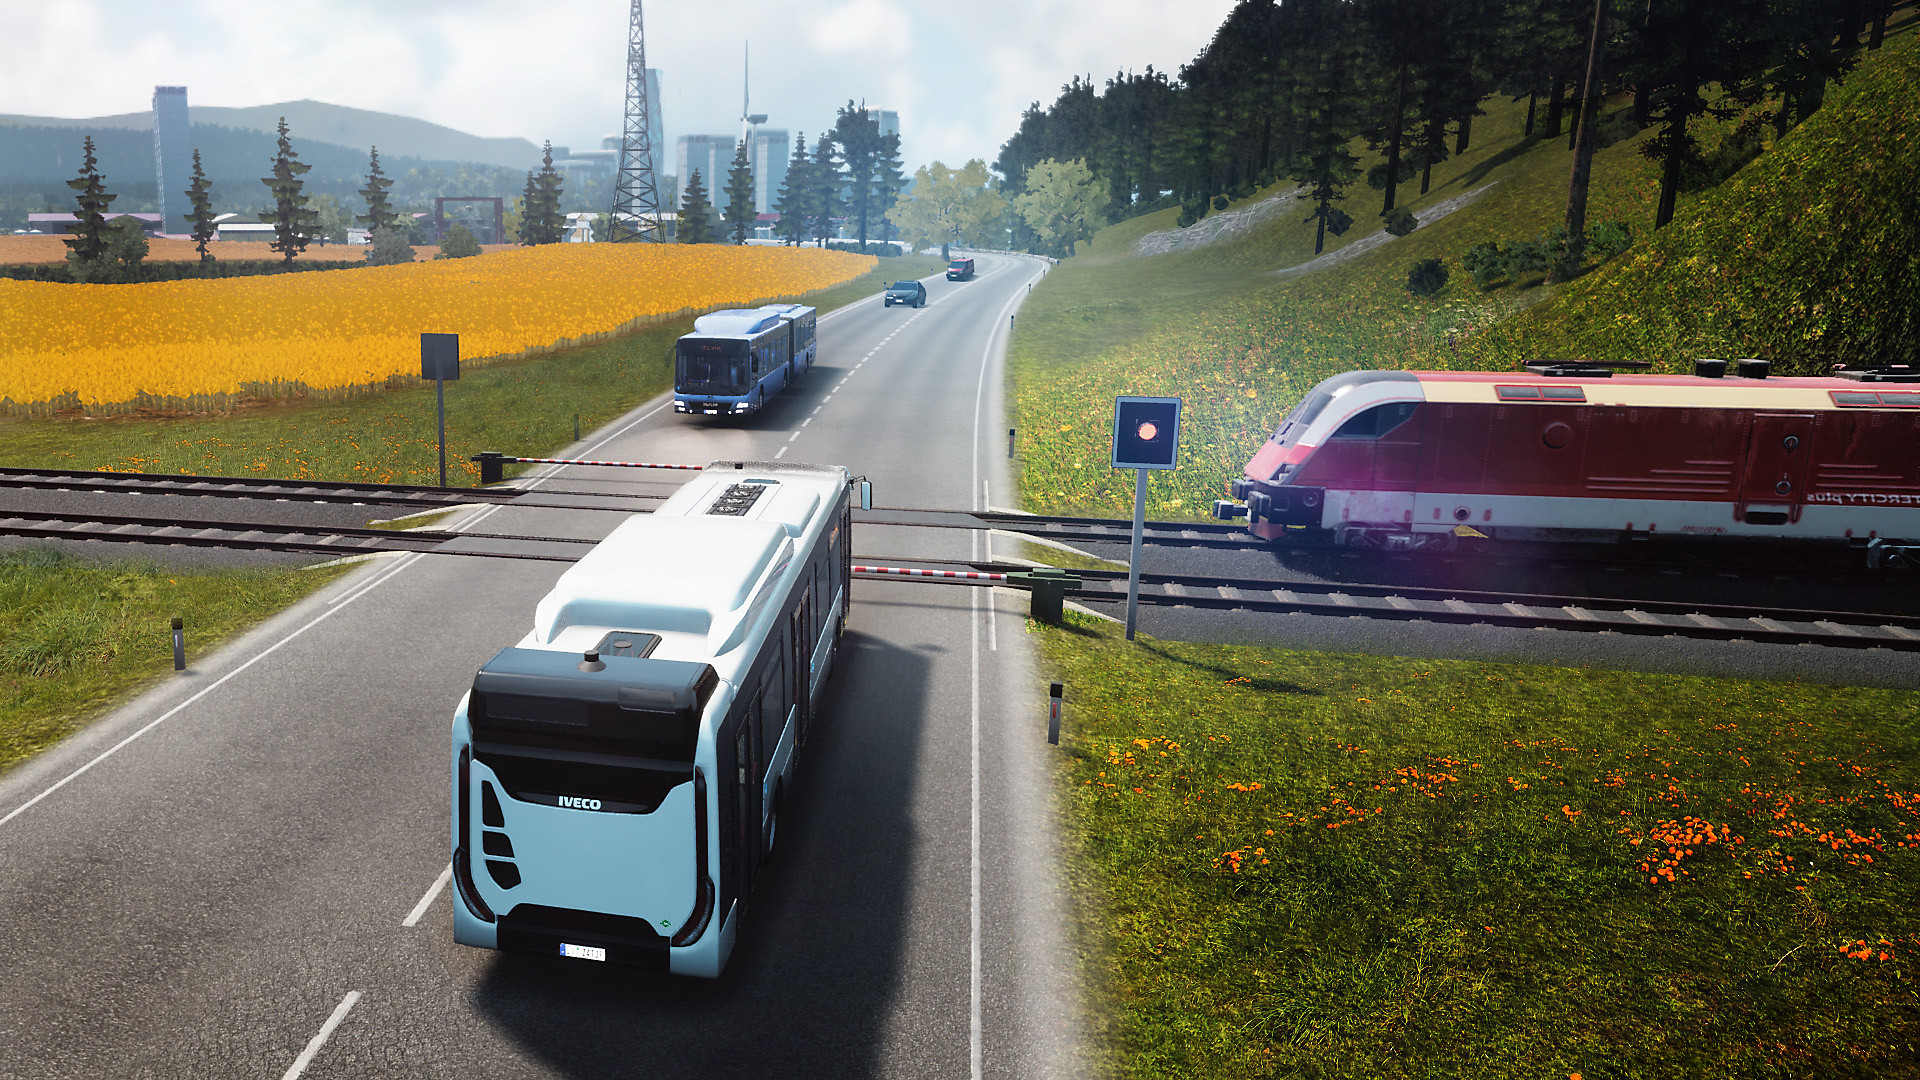 Bus Simulator: Buses stopped at a railroad